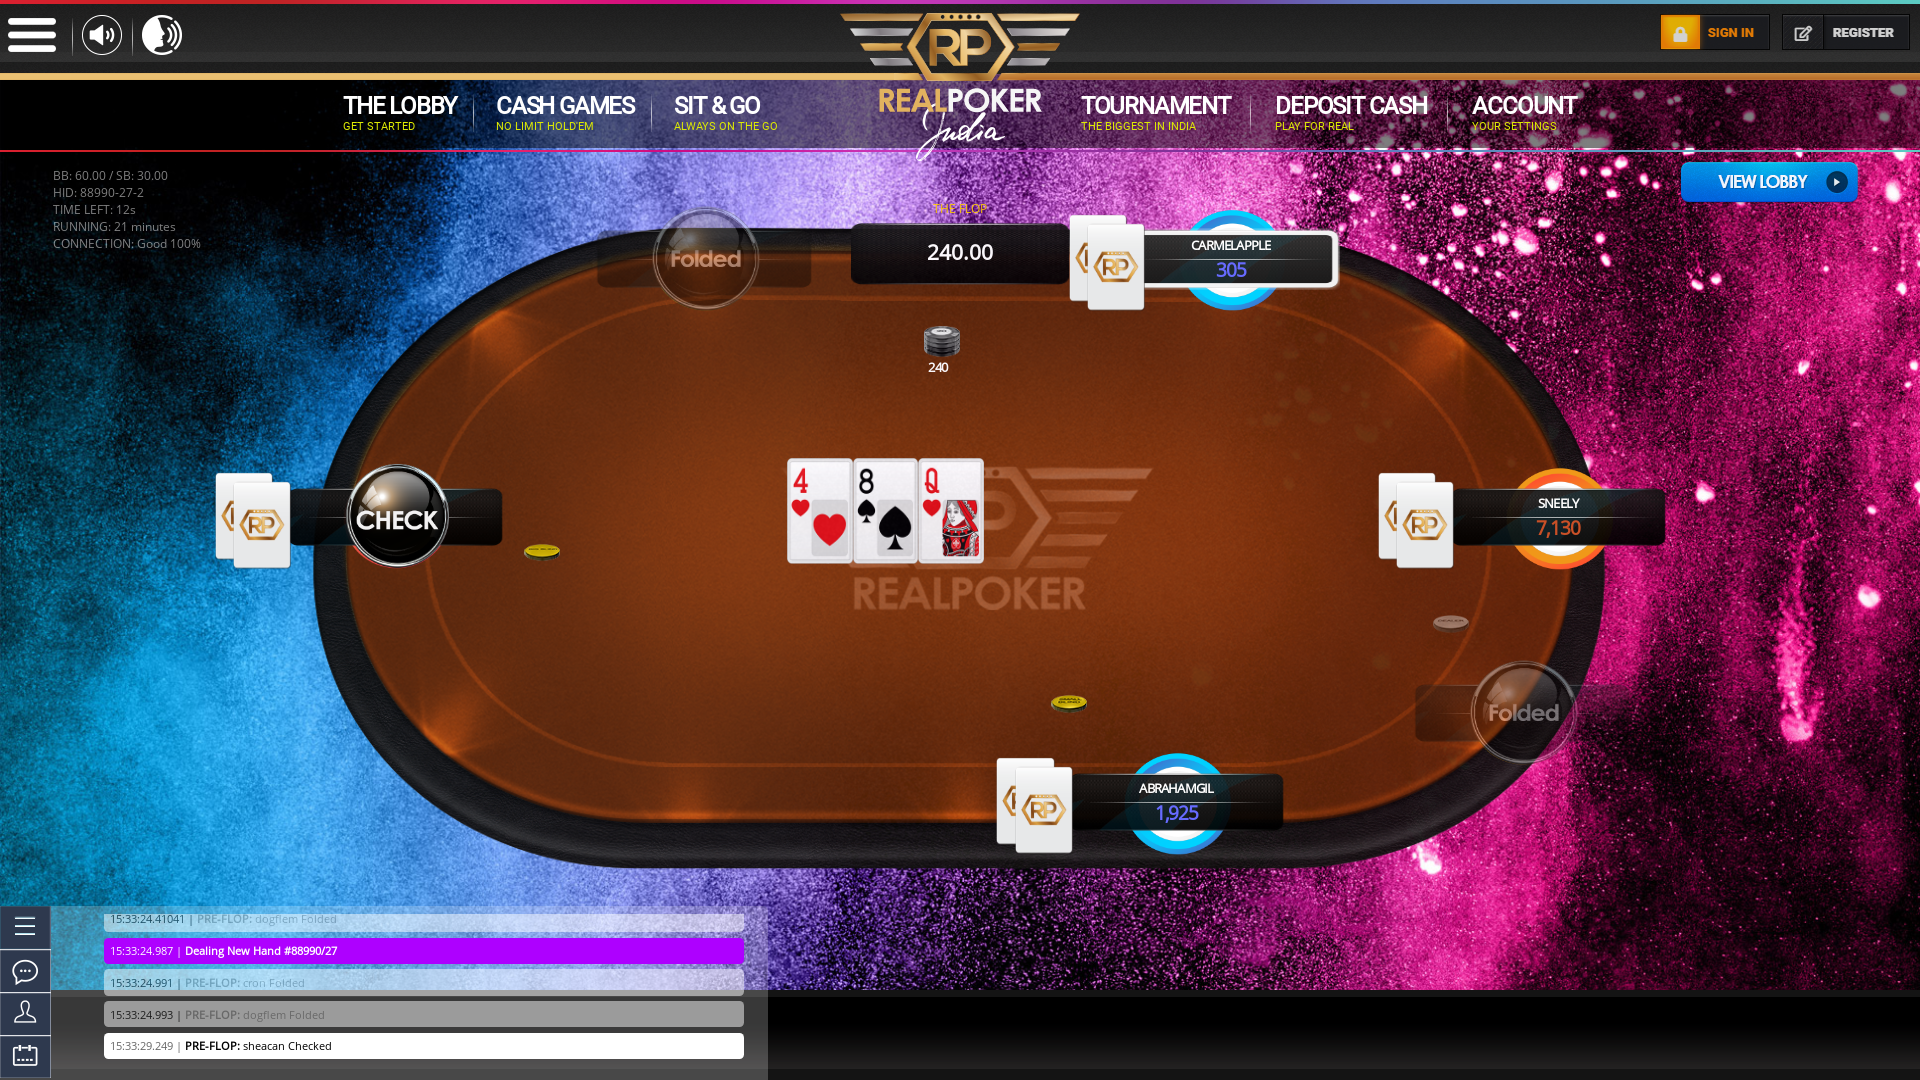 Texas Holdem Poker Online Room on the 5th July